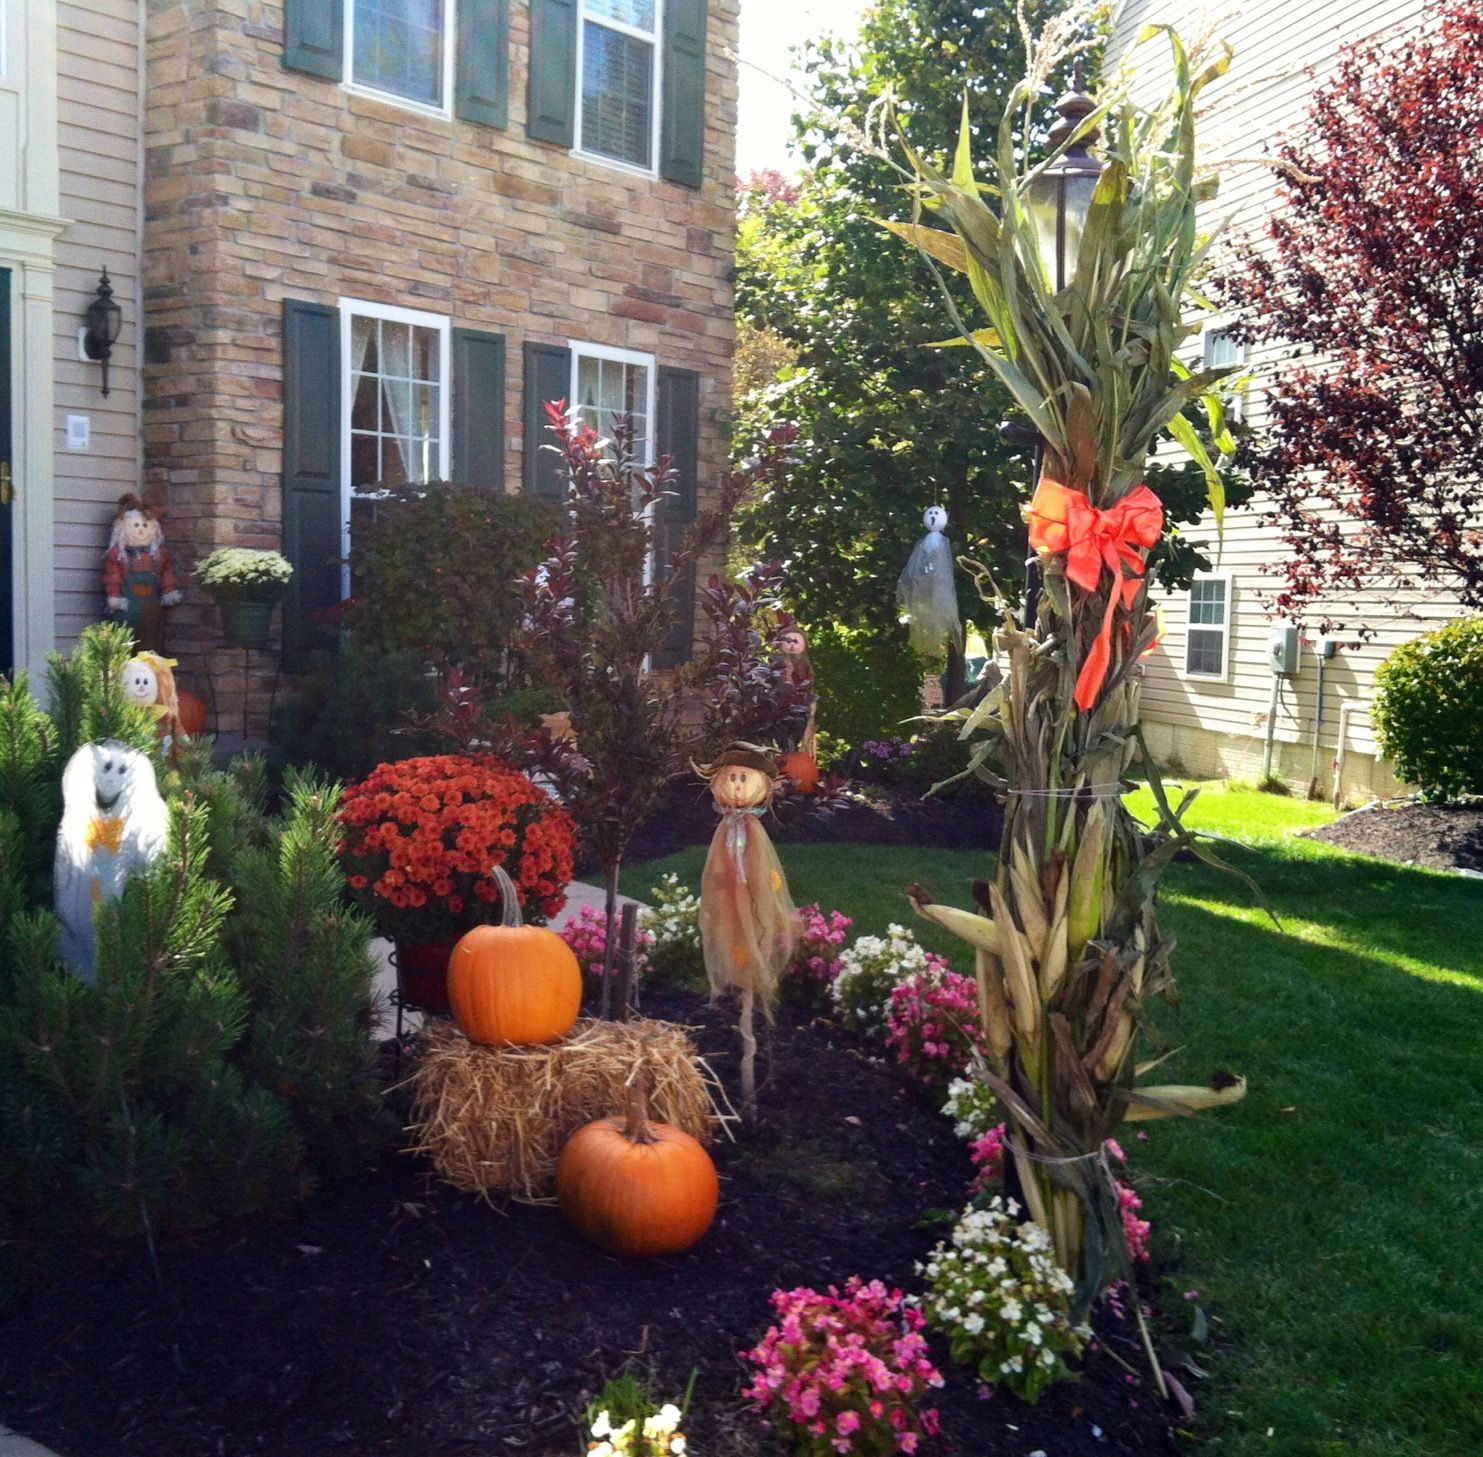 Autumn Yard Decorations: Best 25+ Outdoor Fall Decorations Ideas On Pinterest